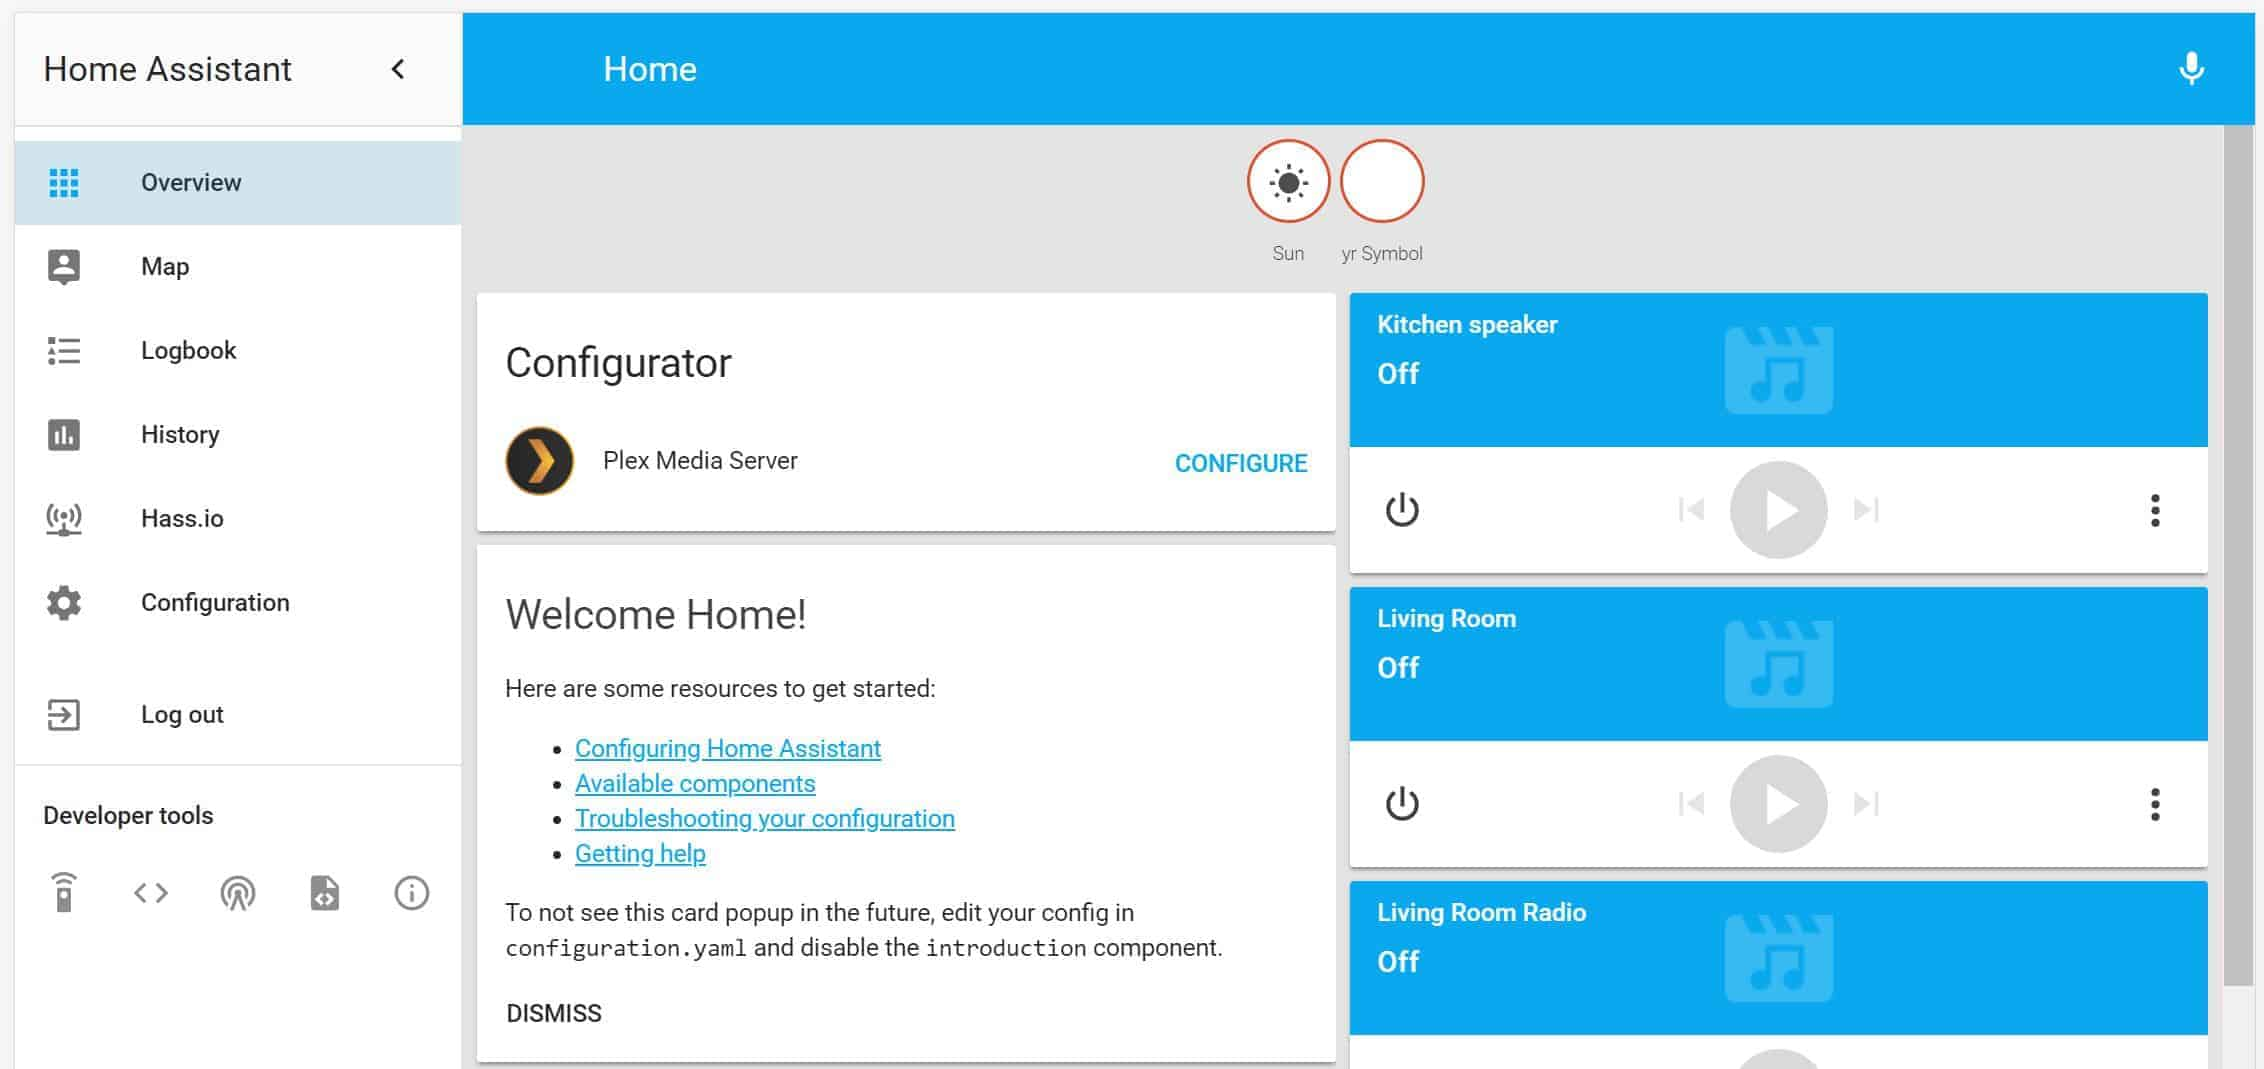 Accessing the Home Assistant for the first time